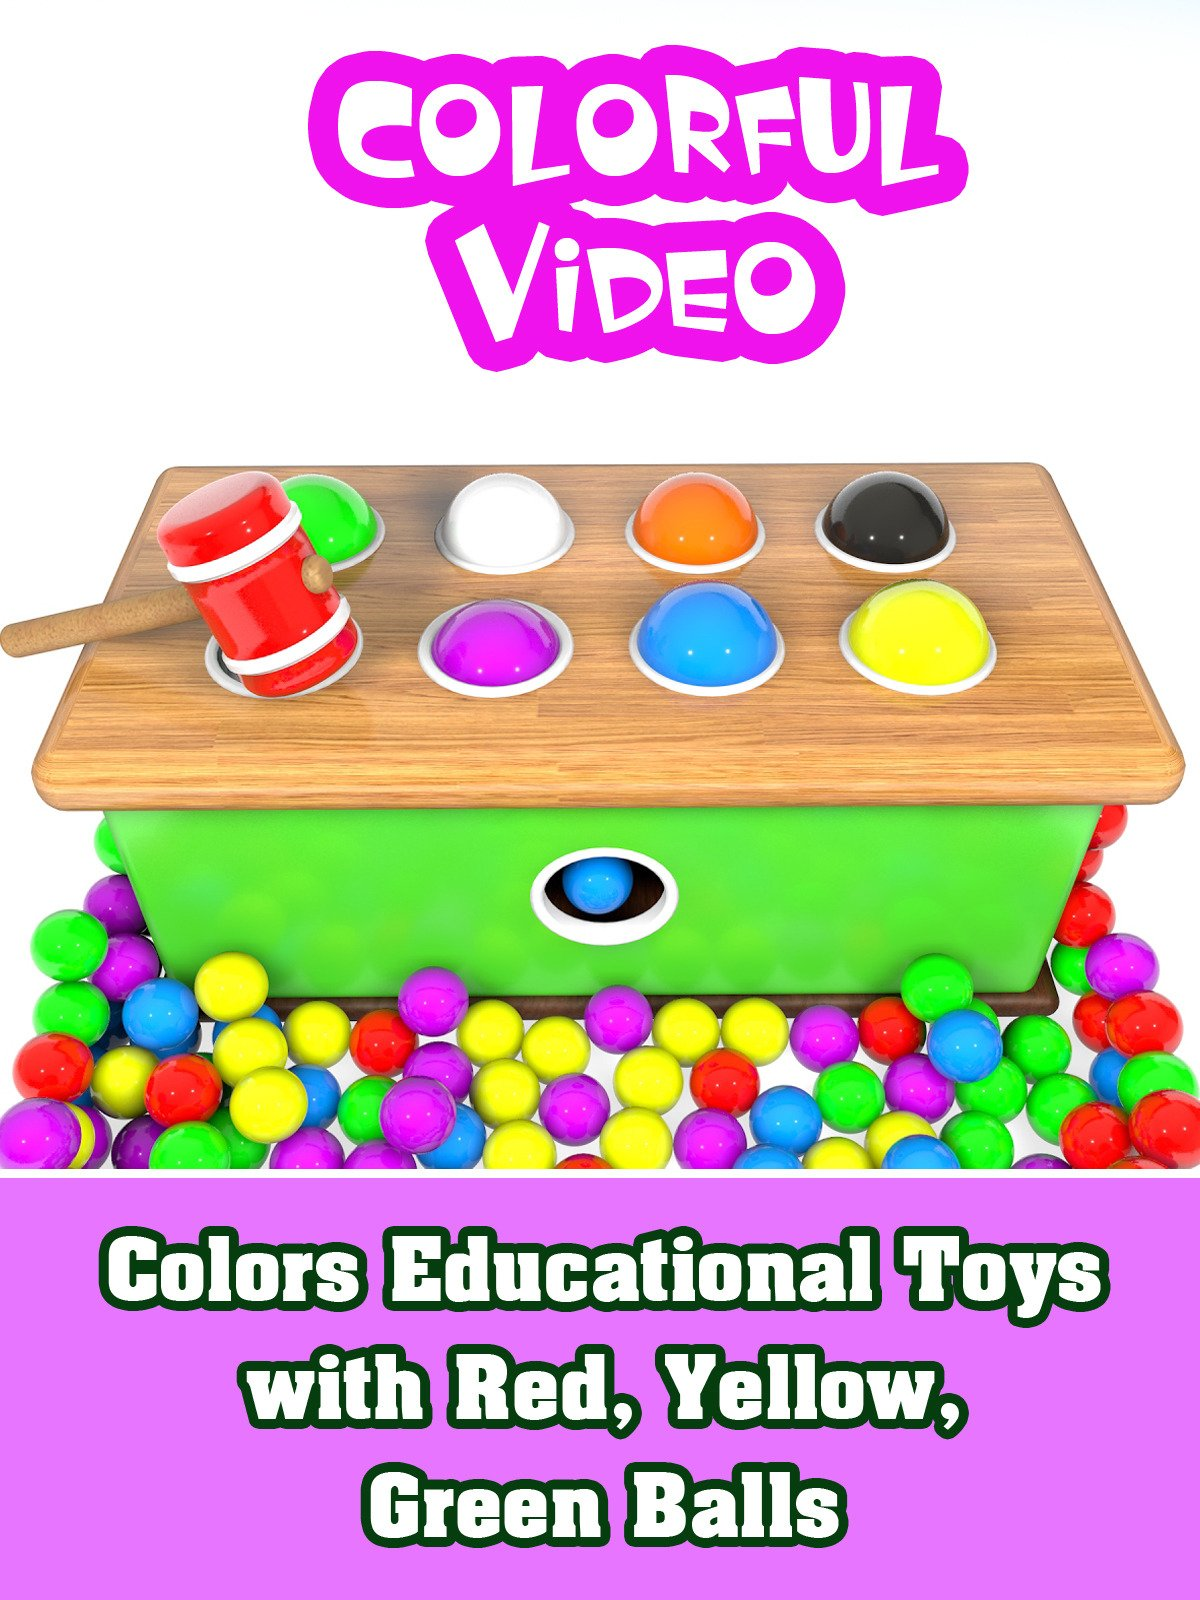 Colors Educational Toys with Red, Yellow, Green Balls